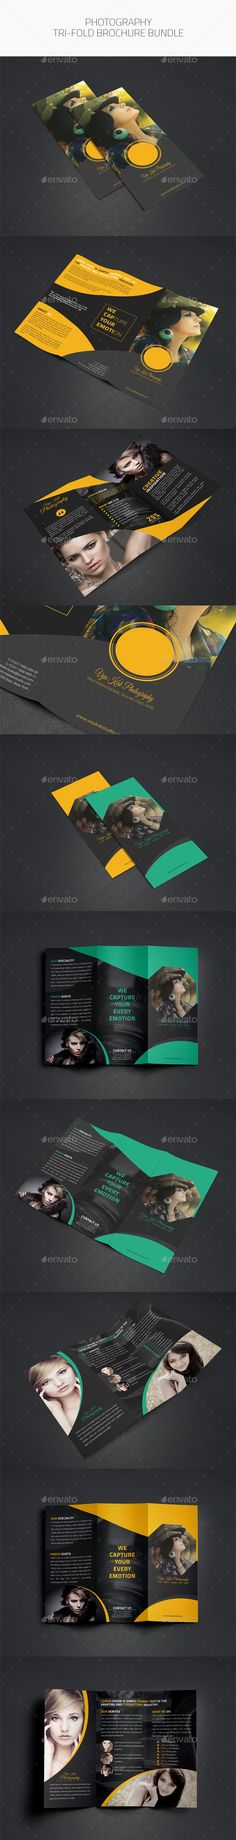 Marriage Counseling - Tri Fold Brochure Template Design - psd brochure design inspiration